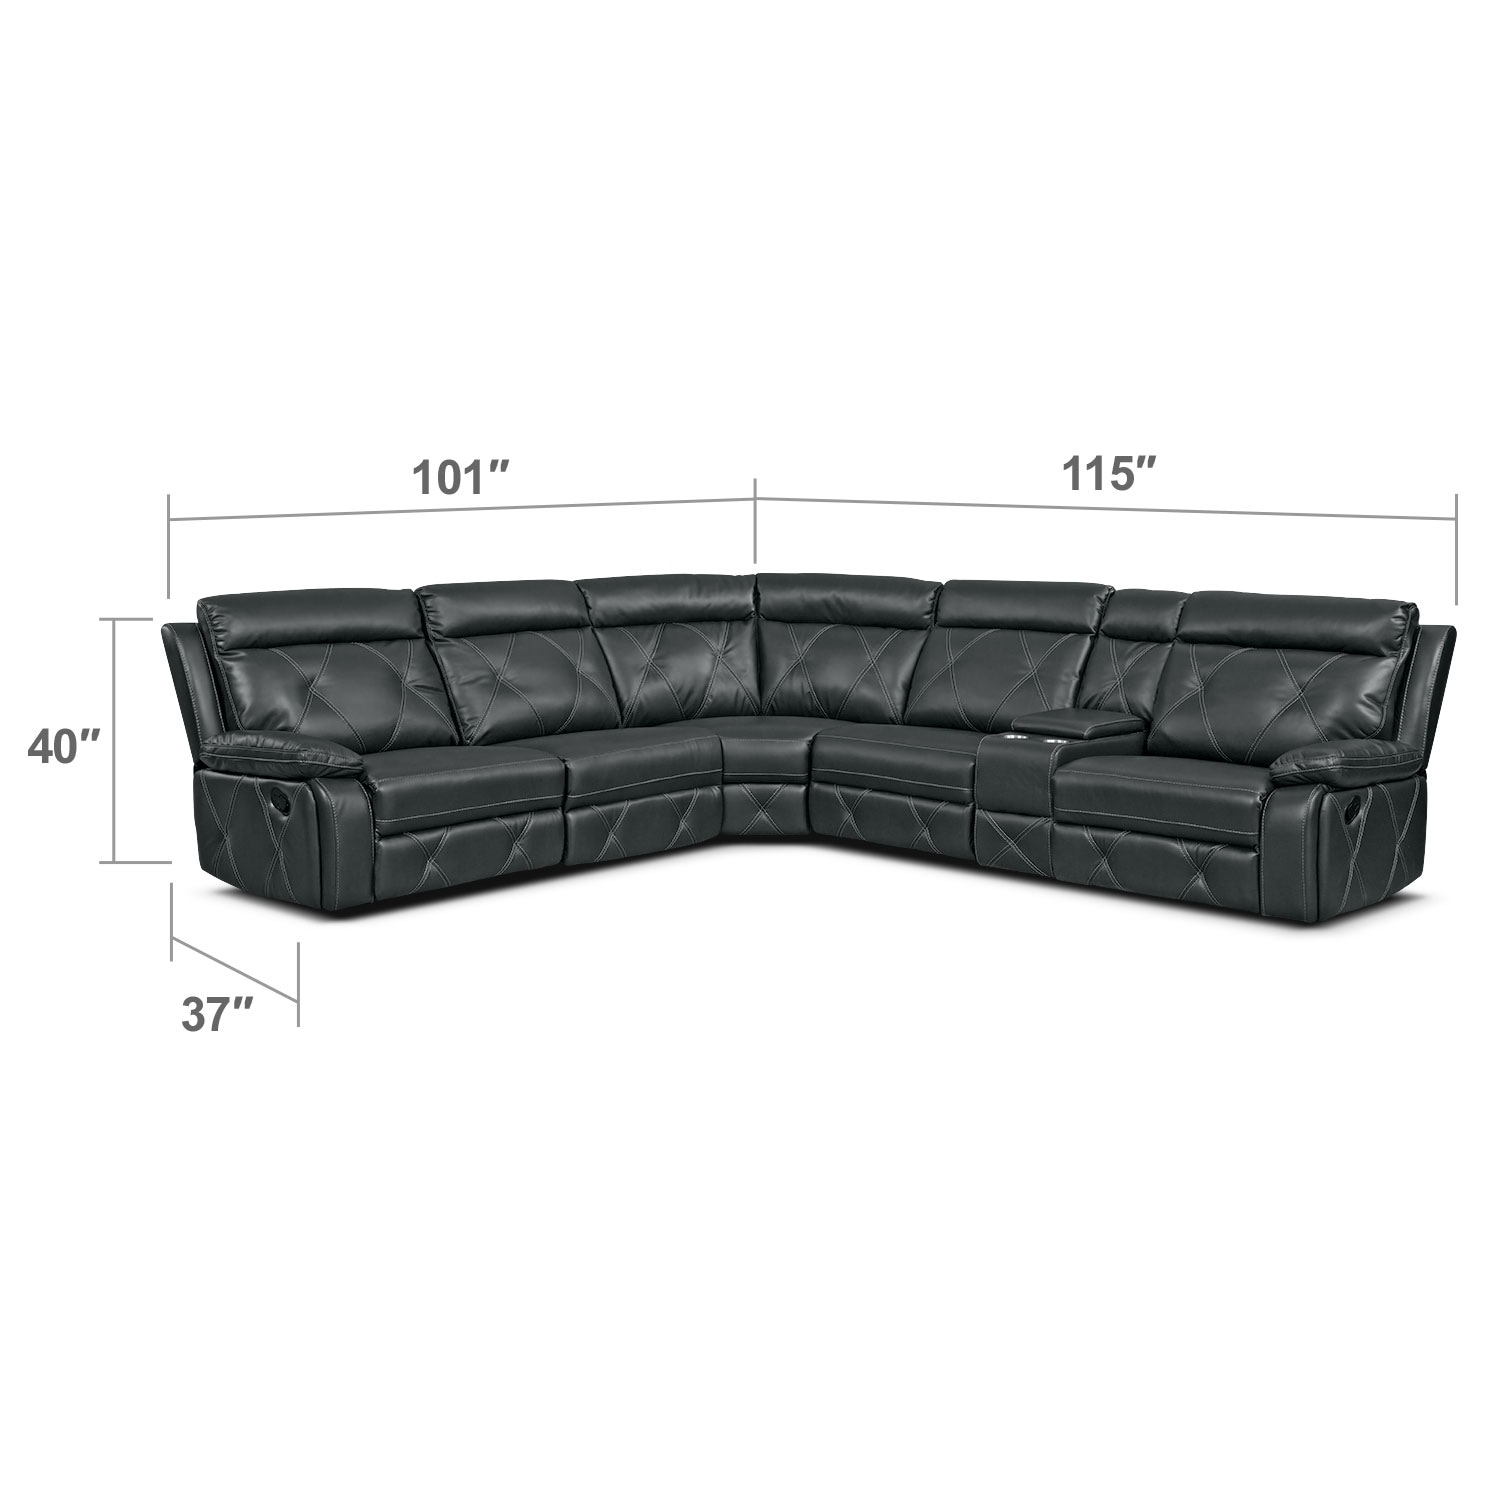 Living Room Furniture - Dante Charcoal 6 Pc. Reclining Sectional w/ 2 Reclining Seats